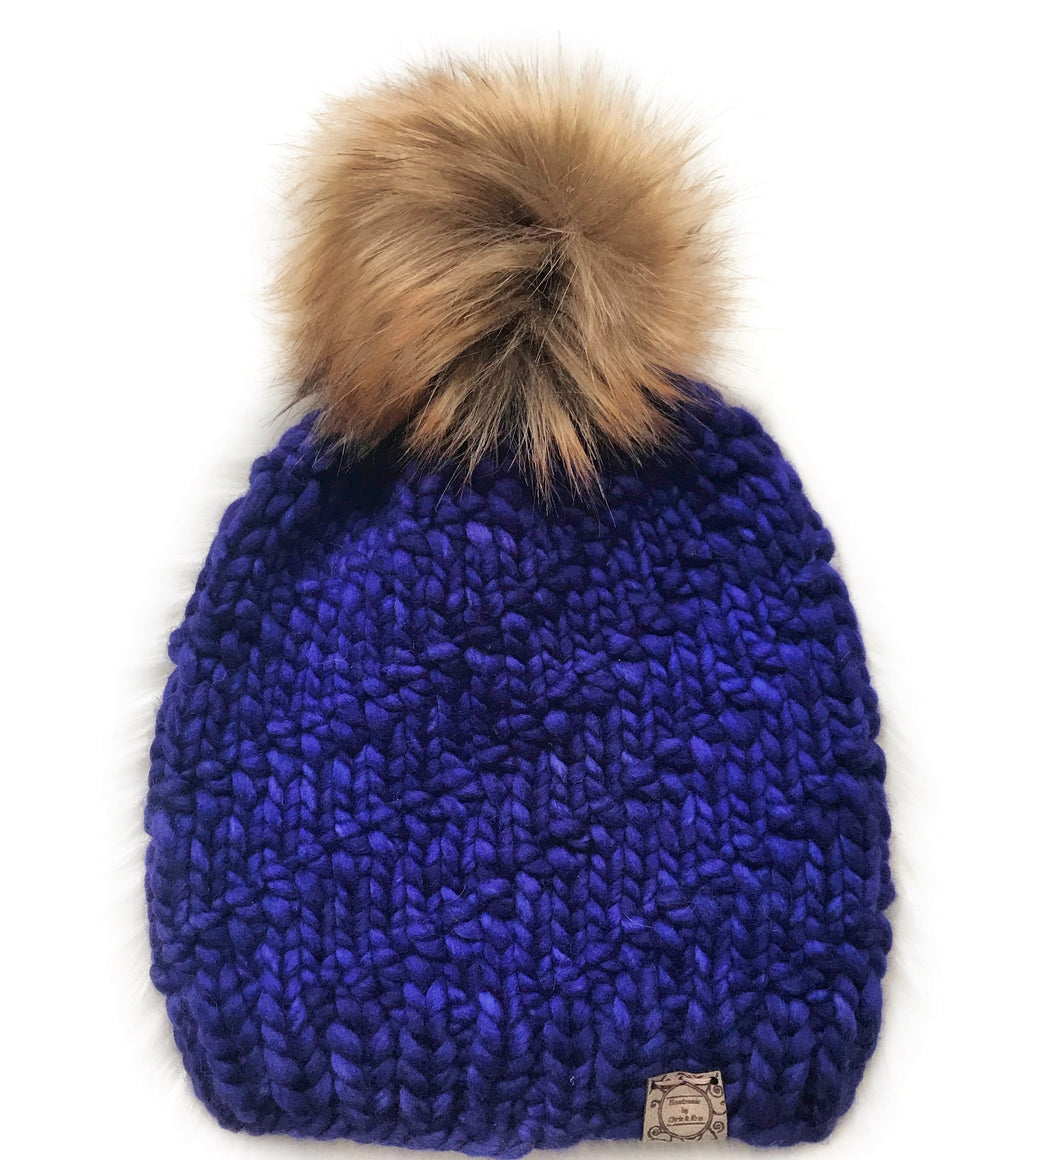 The Luxe Madelyn Toque in Purple Mystery with Kodiak Pom